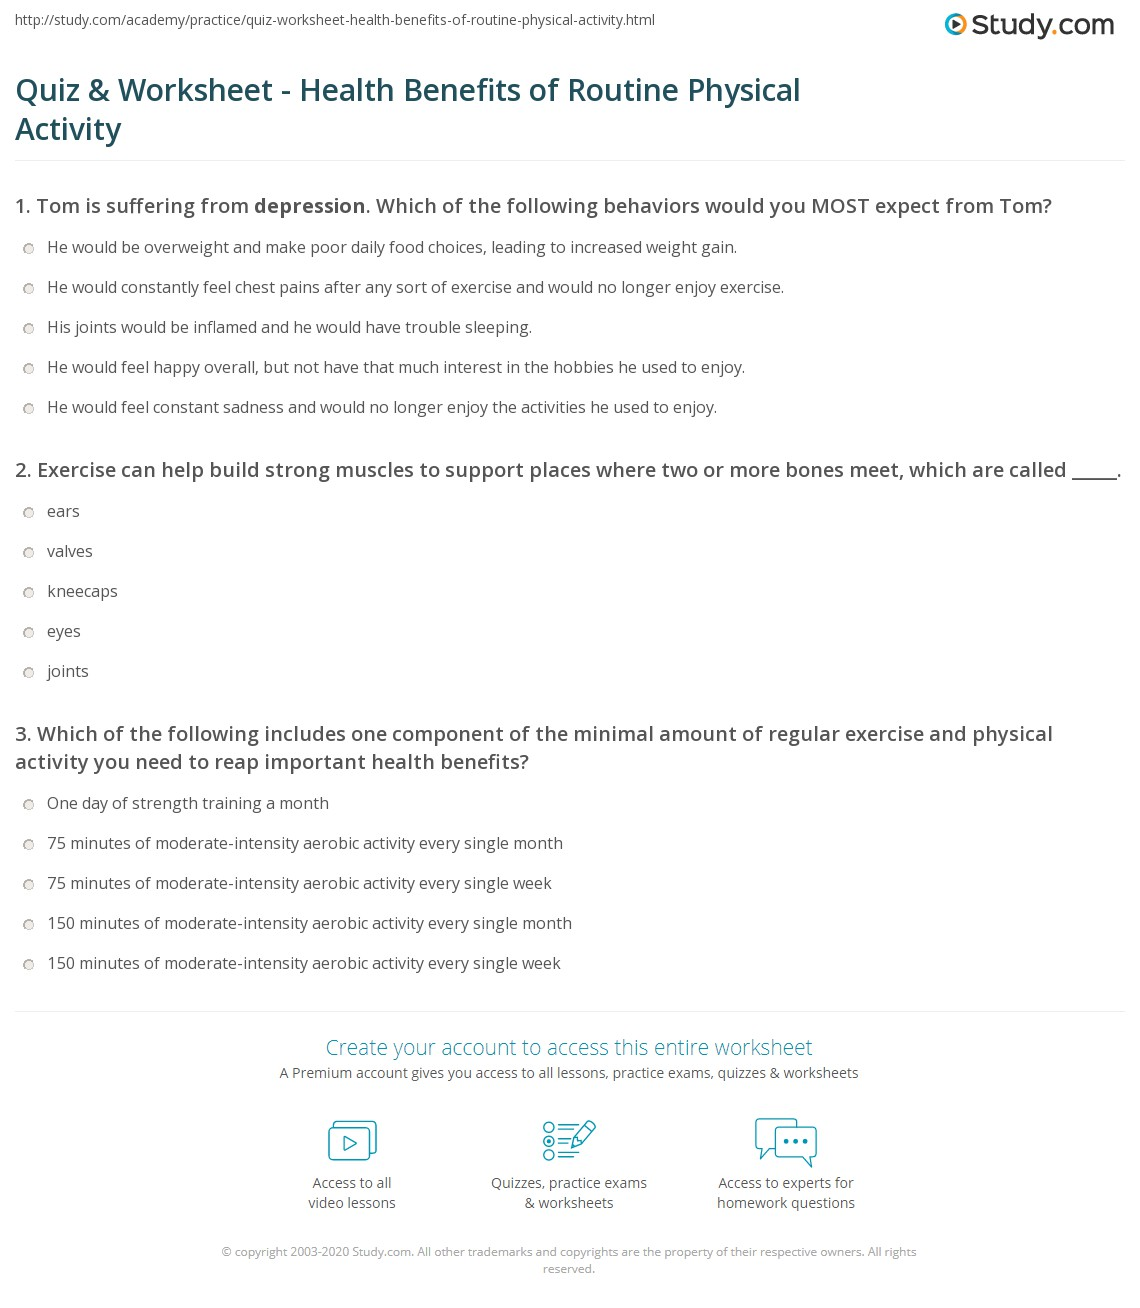 Quiz Worksheet Health Benefits Of Routine Physical Activity